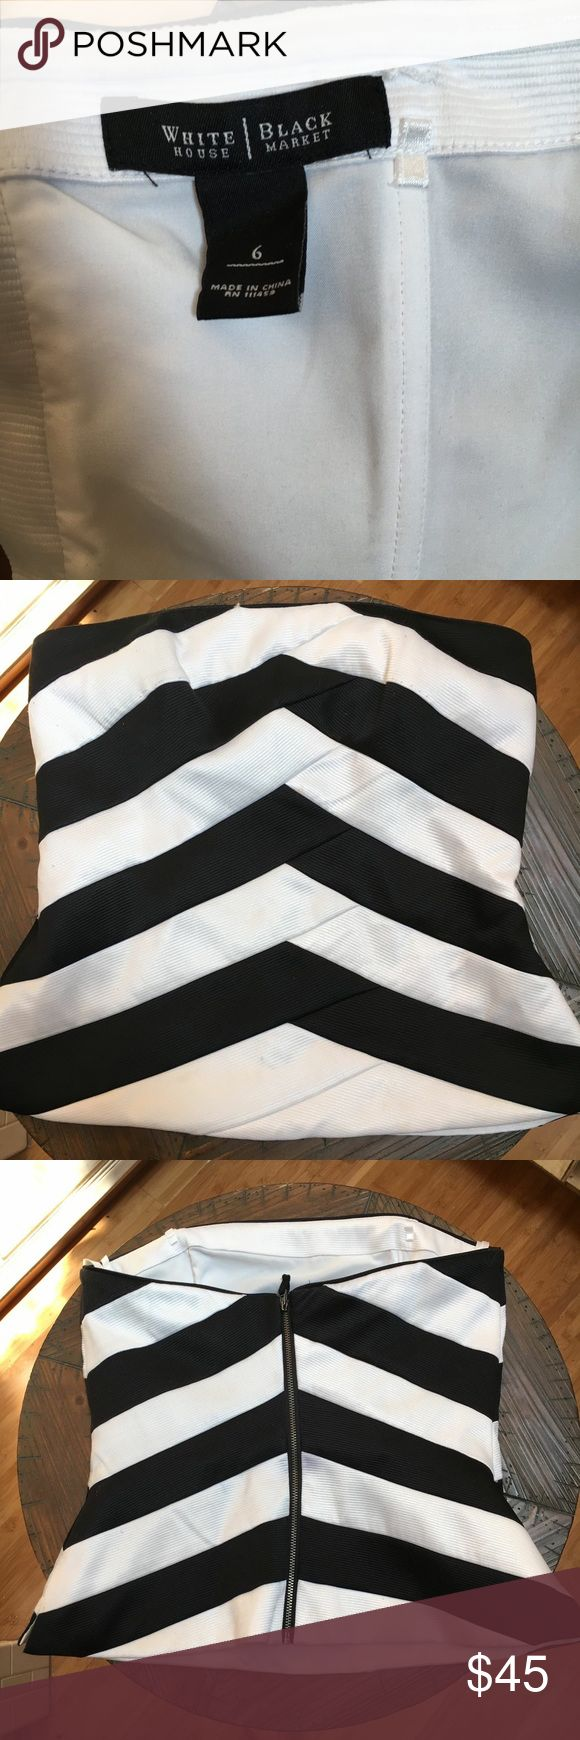 Formal top White House Black Market black and white sleeveless top. Great for formal occasions or with jeans. Size 6. Gently worn. White House Black Market Tops